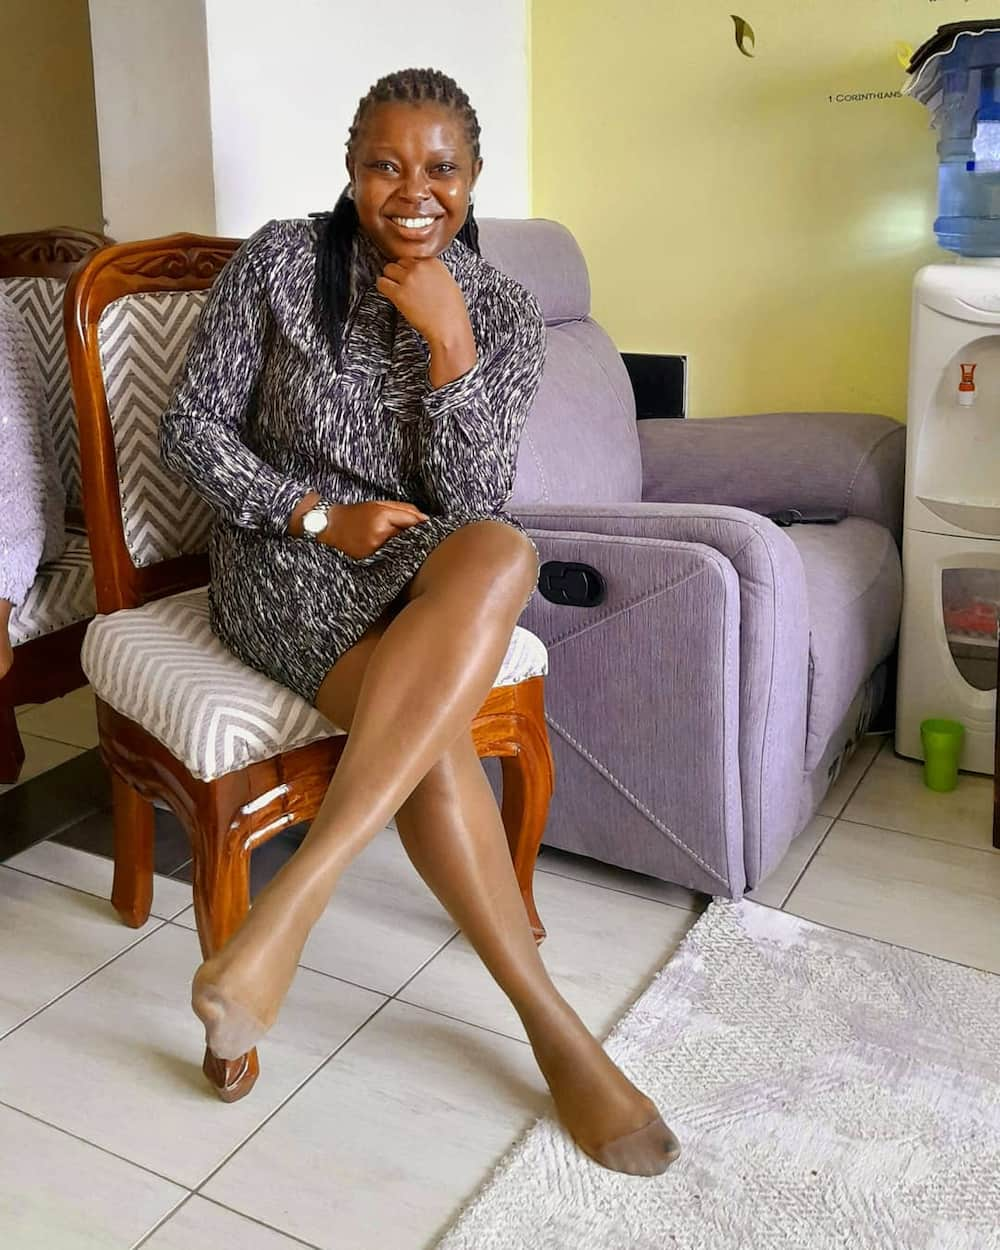 Margaret Wariko: Journalist says she divorced her hubby after 2 years due to his insecurities